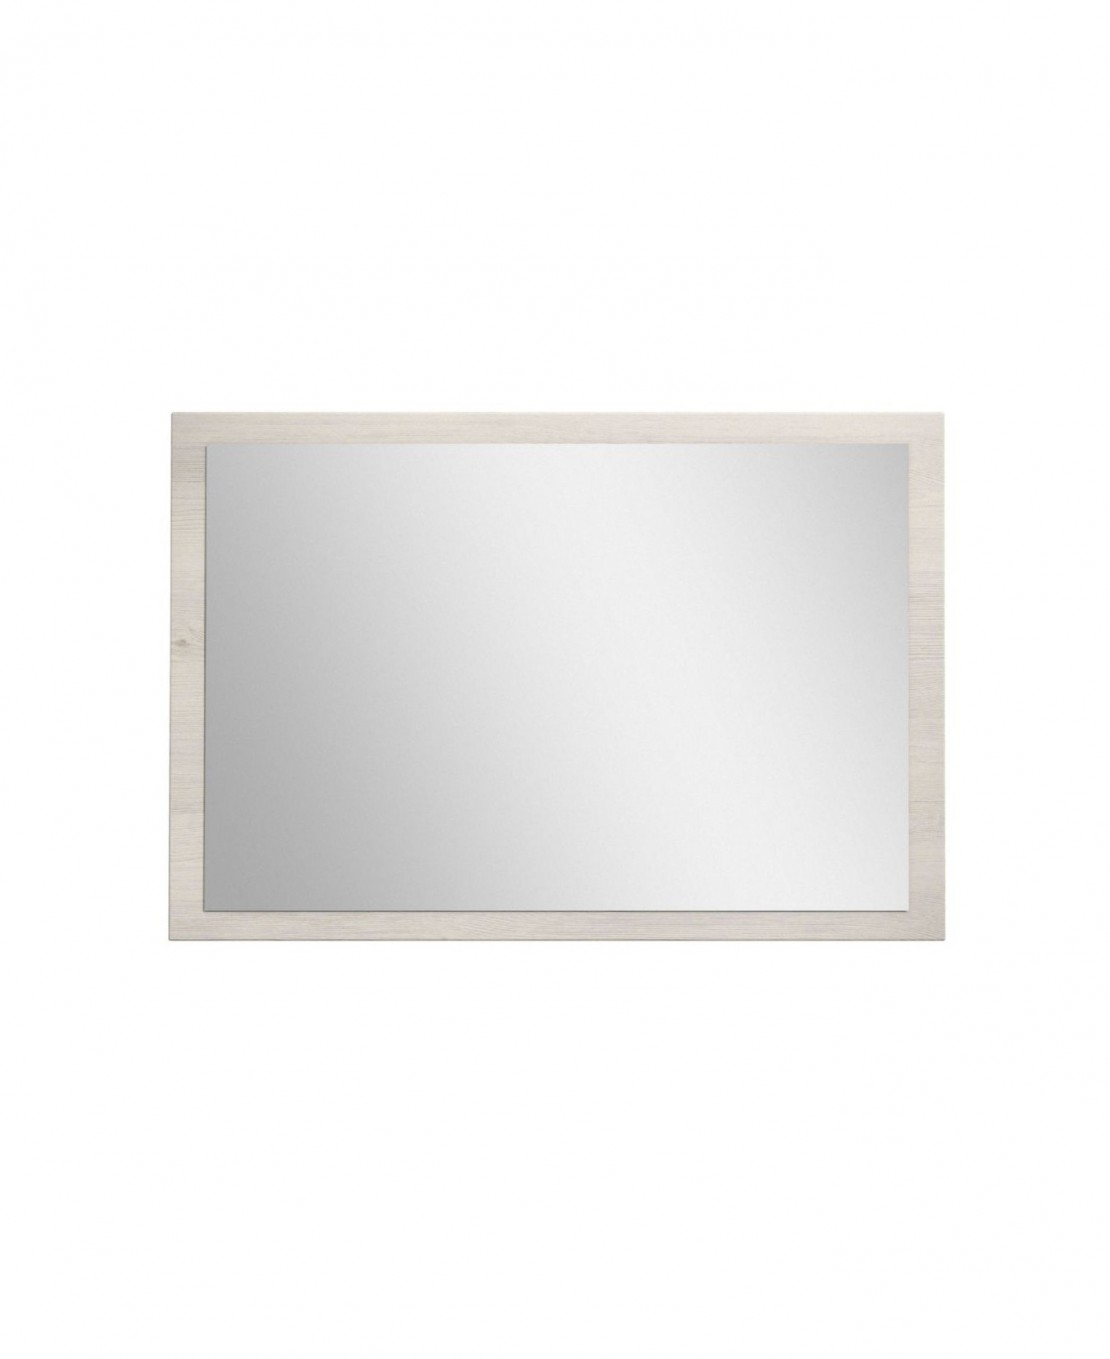 /_images/product-photos/kt-furniture-geo-mirror-matt-white-with-elm-carcase-a.jpg